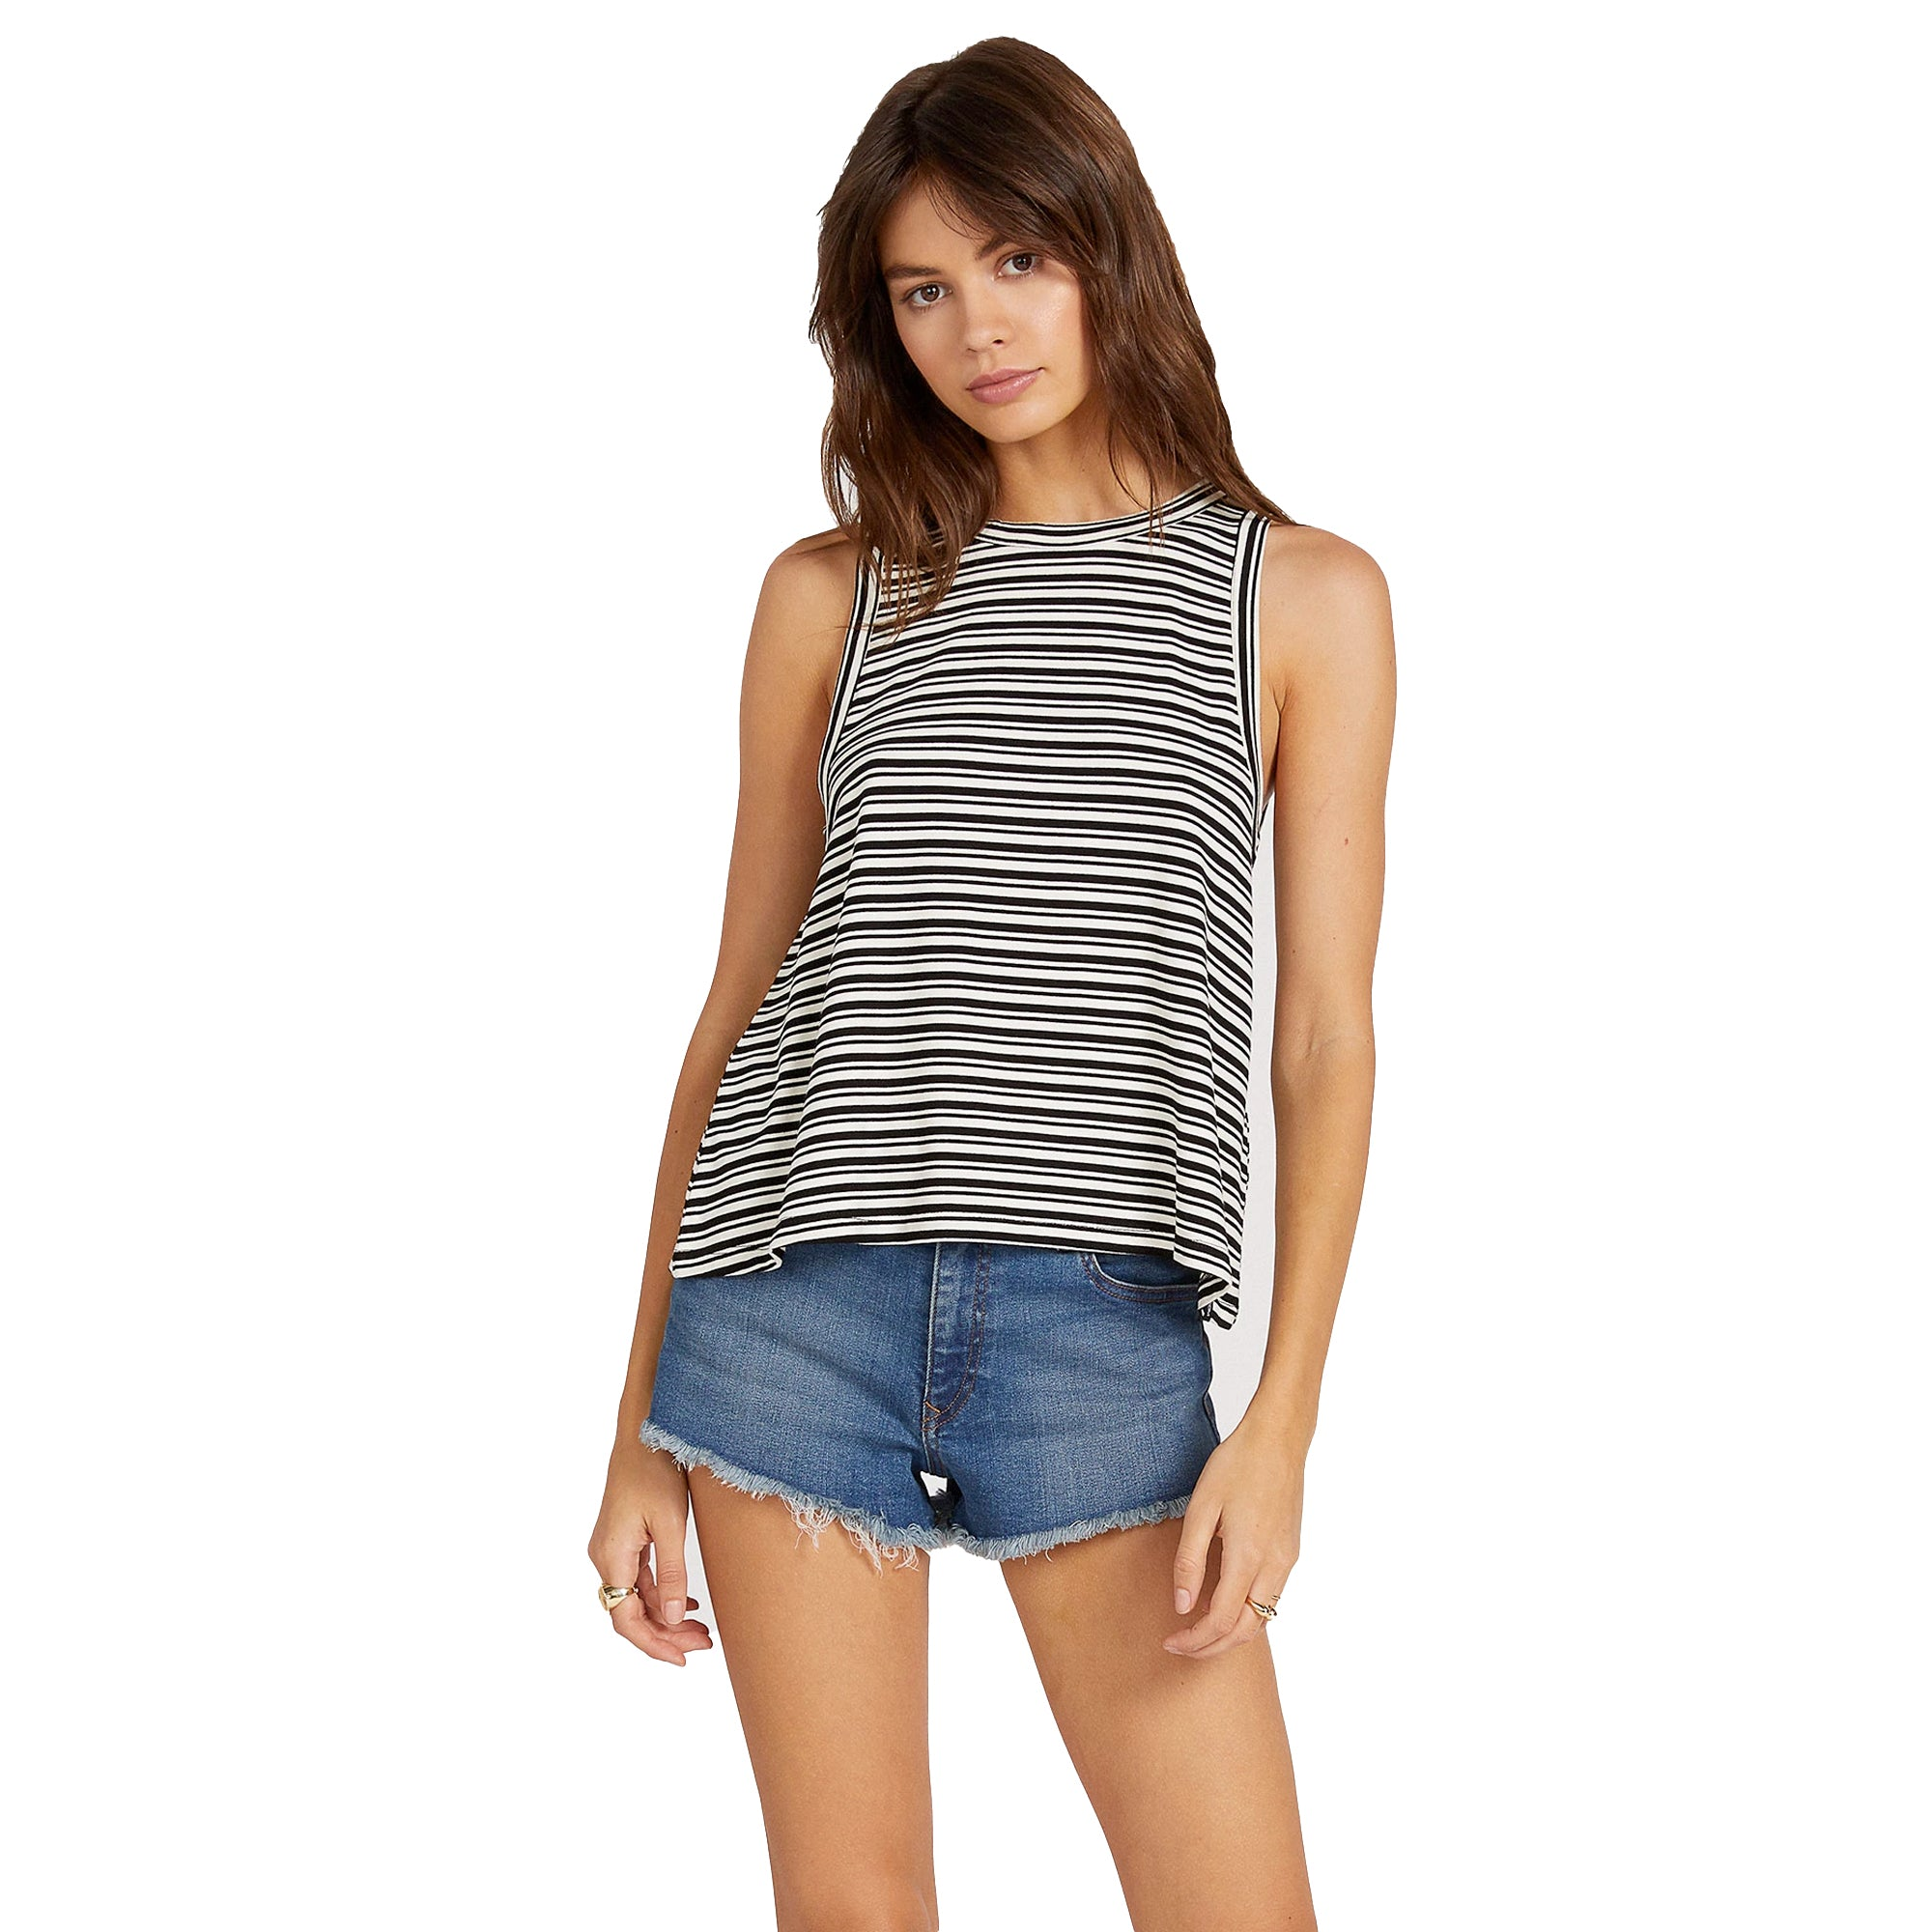 Volcom What She Said Women's Striped Tank Top